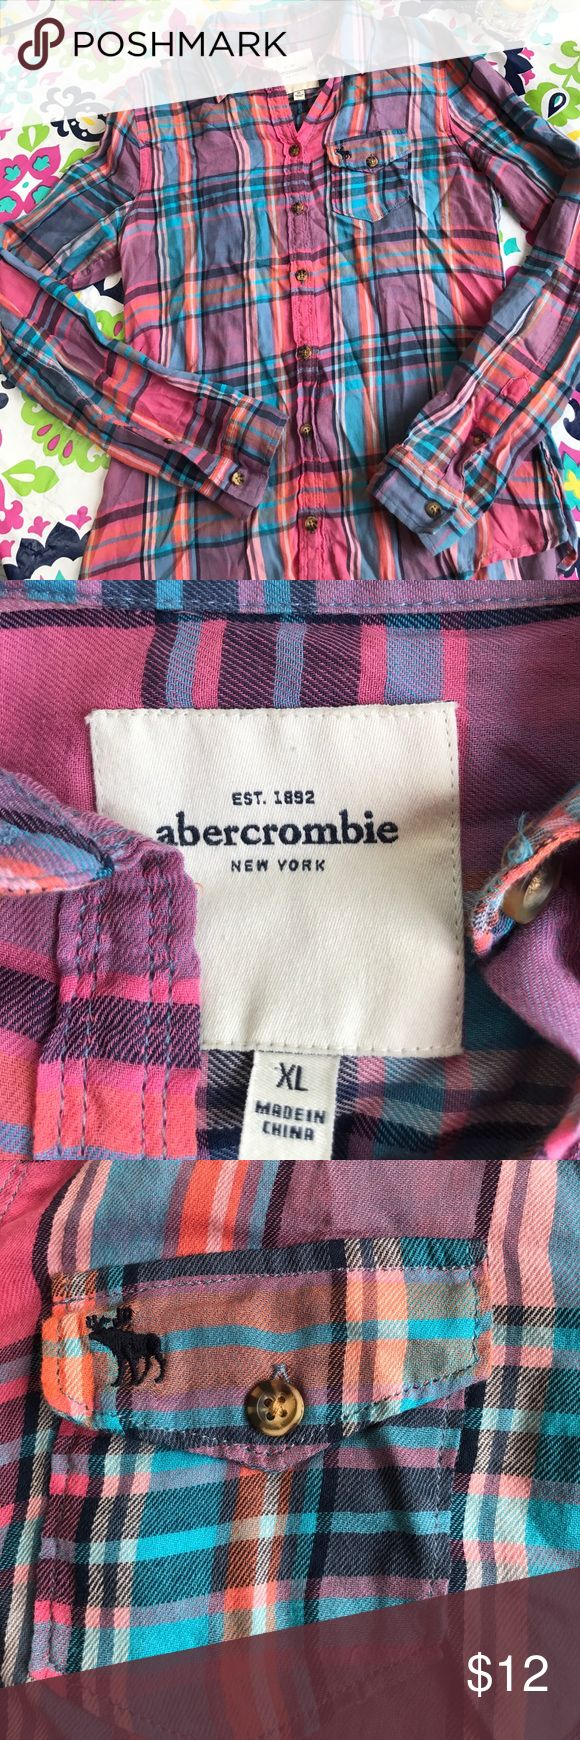 Abercrombie Girls super light weight flannel Girls Abercrombie XL super light weight plaid flannel in beautiful colors. Orange pink blue purple. Perfect for back to school when the days are still warm. EUC just got outgrown! abercrombie kids Shirts & Tops Button Down Shirts